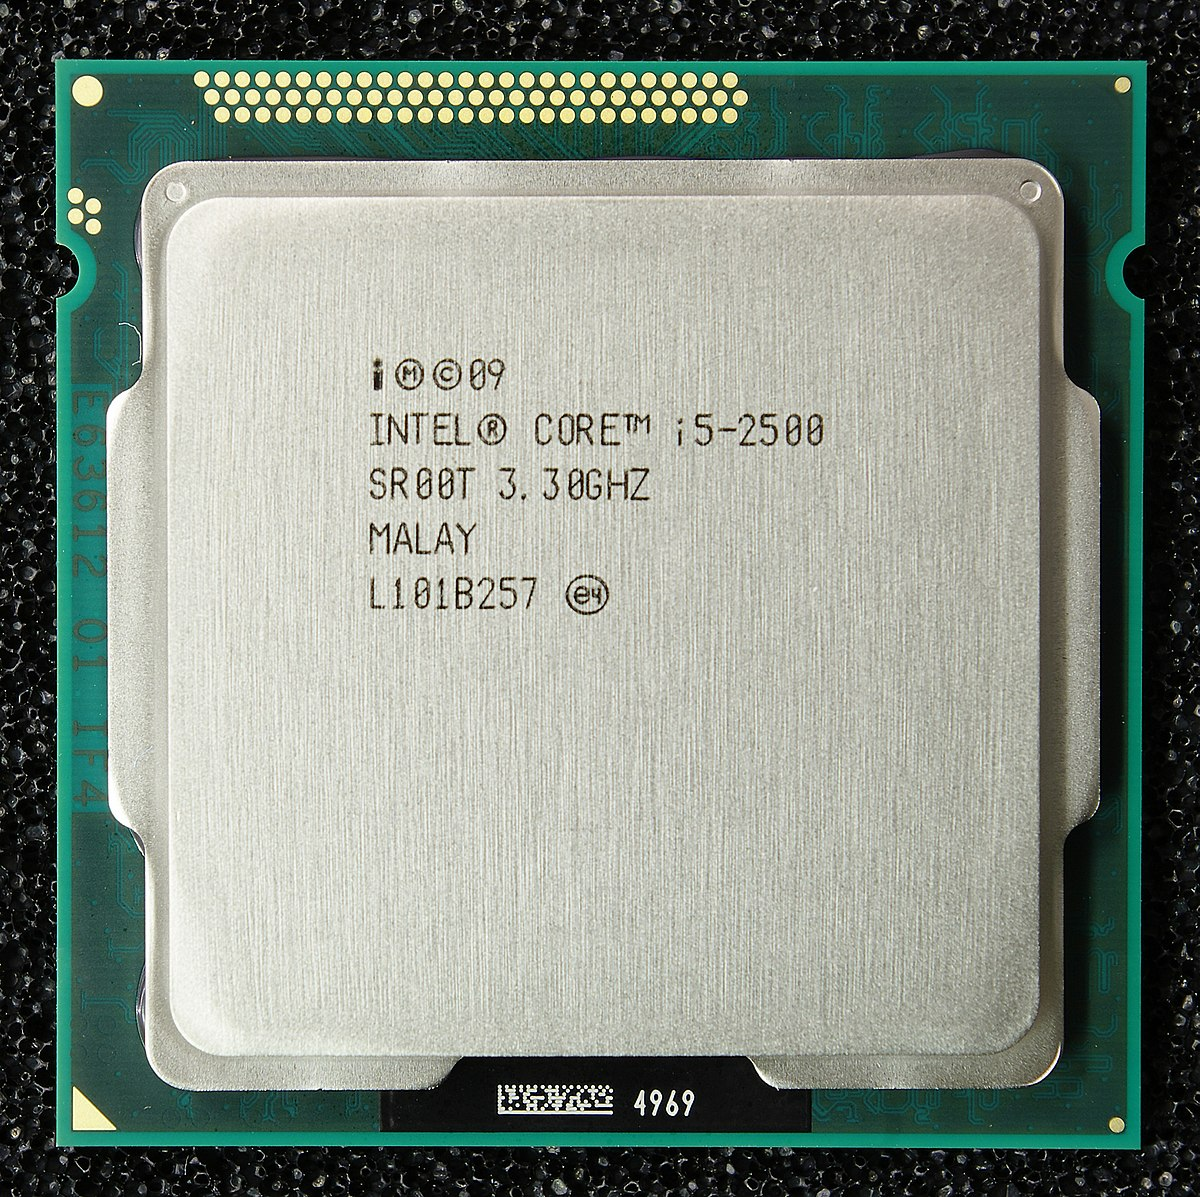 Intel Graphics Technology Wikipedia